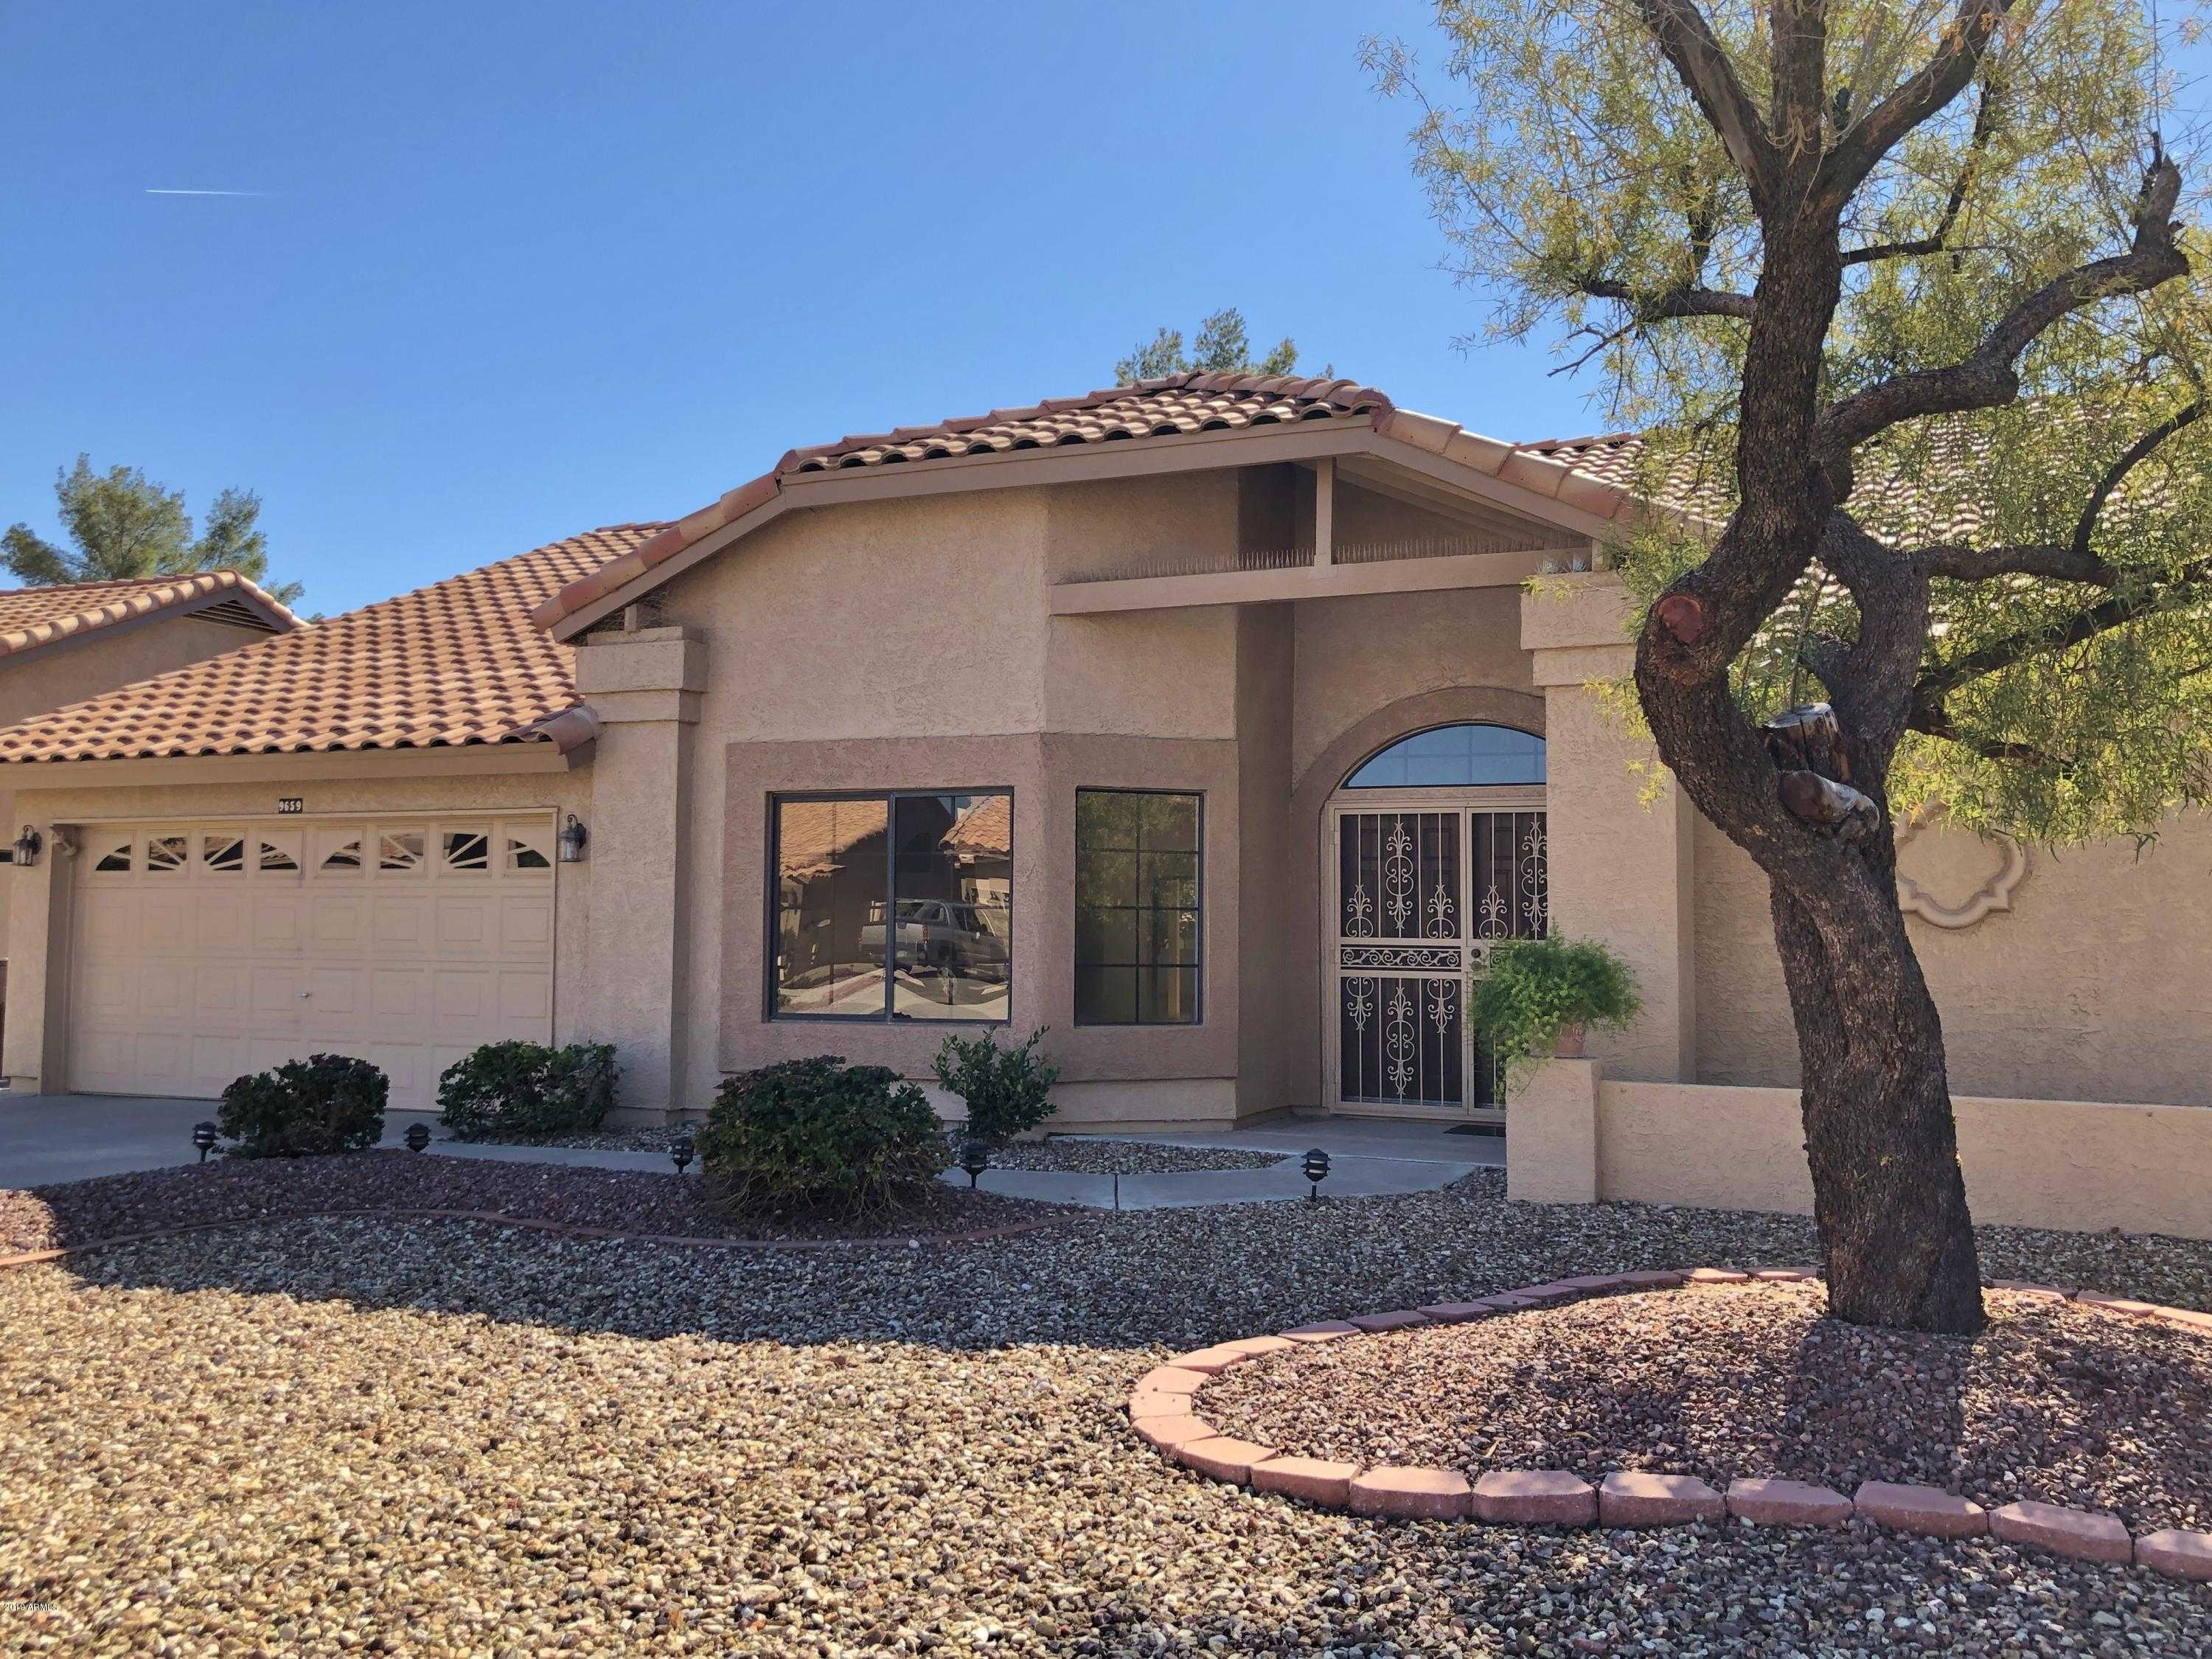 $300,000 - 3Br/3Ba - Home for Sale in Mountain Park Estates At Westbrook Village, Peoria